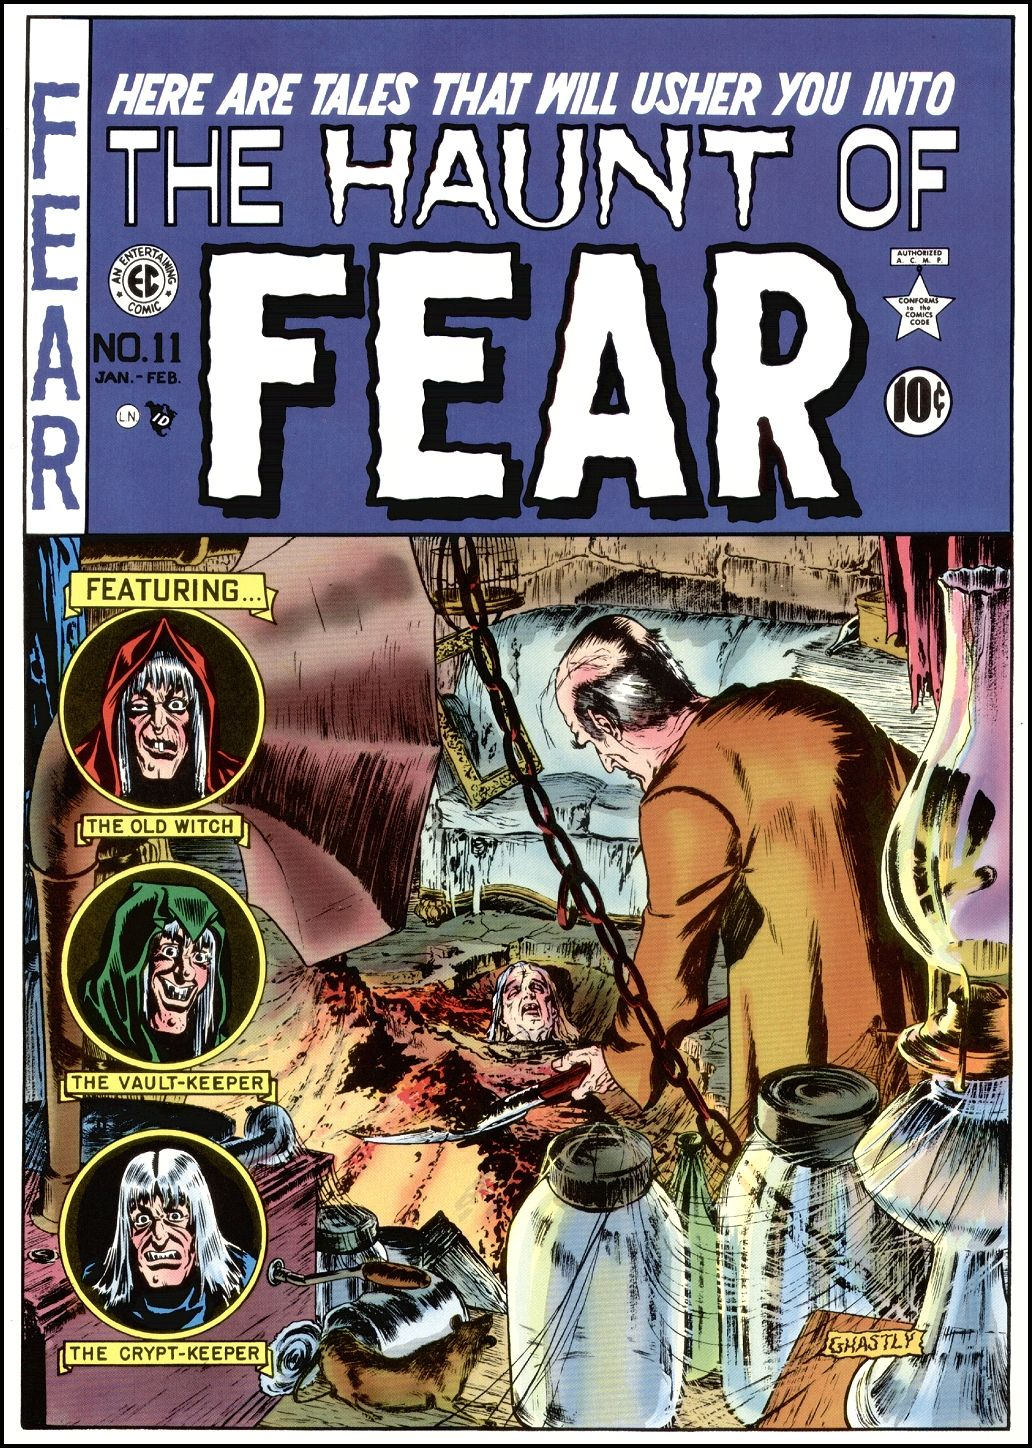 The Golden Age The Haunt of Fear 195054 cover art by